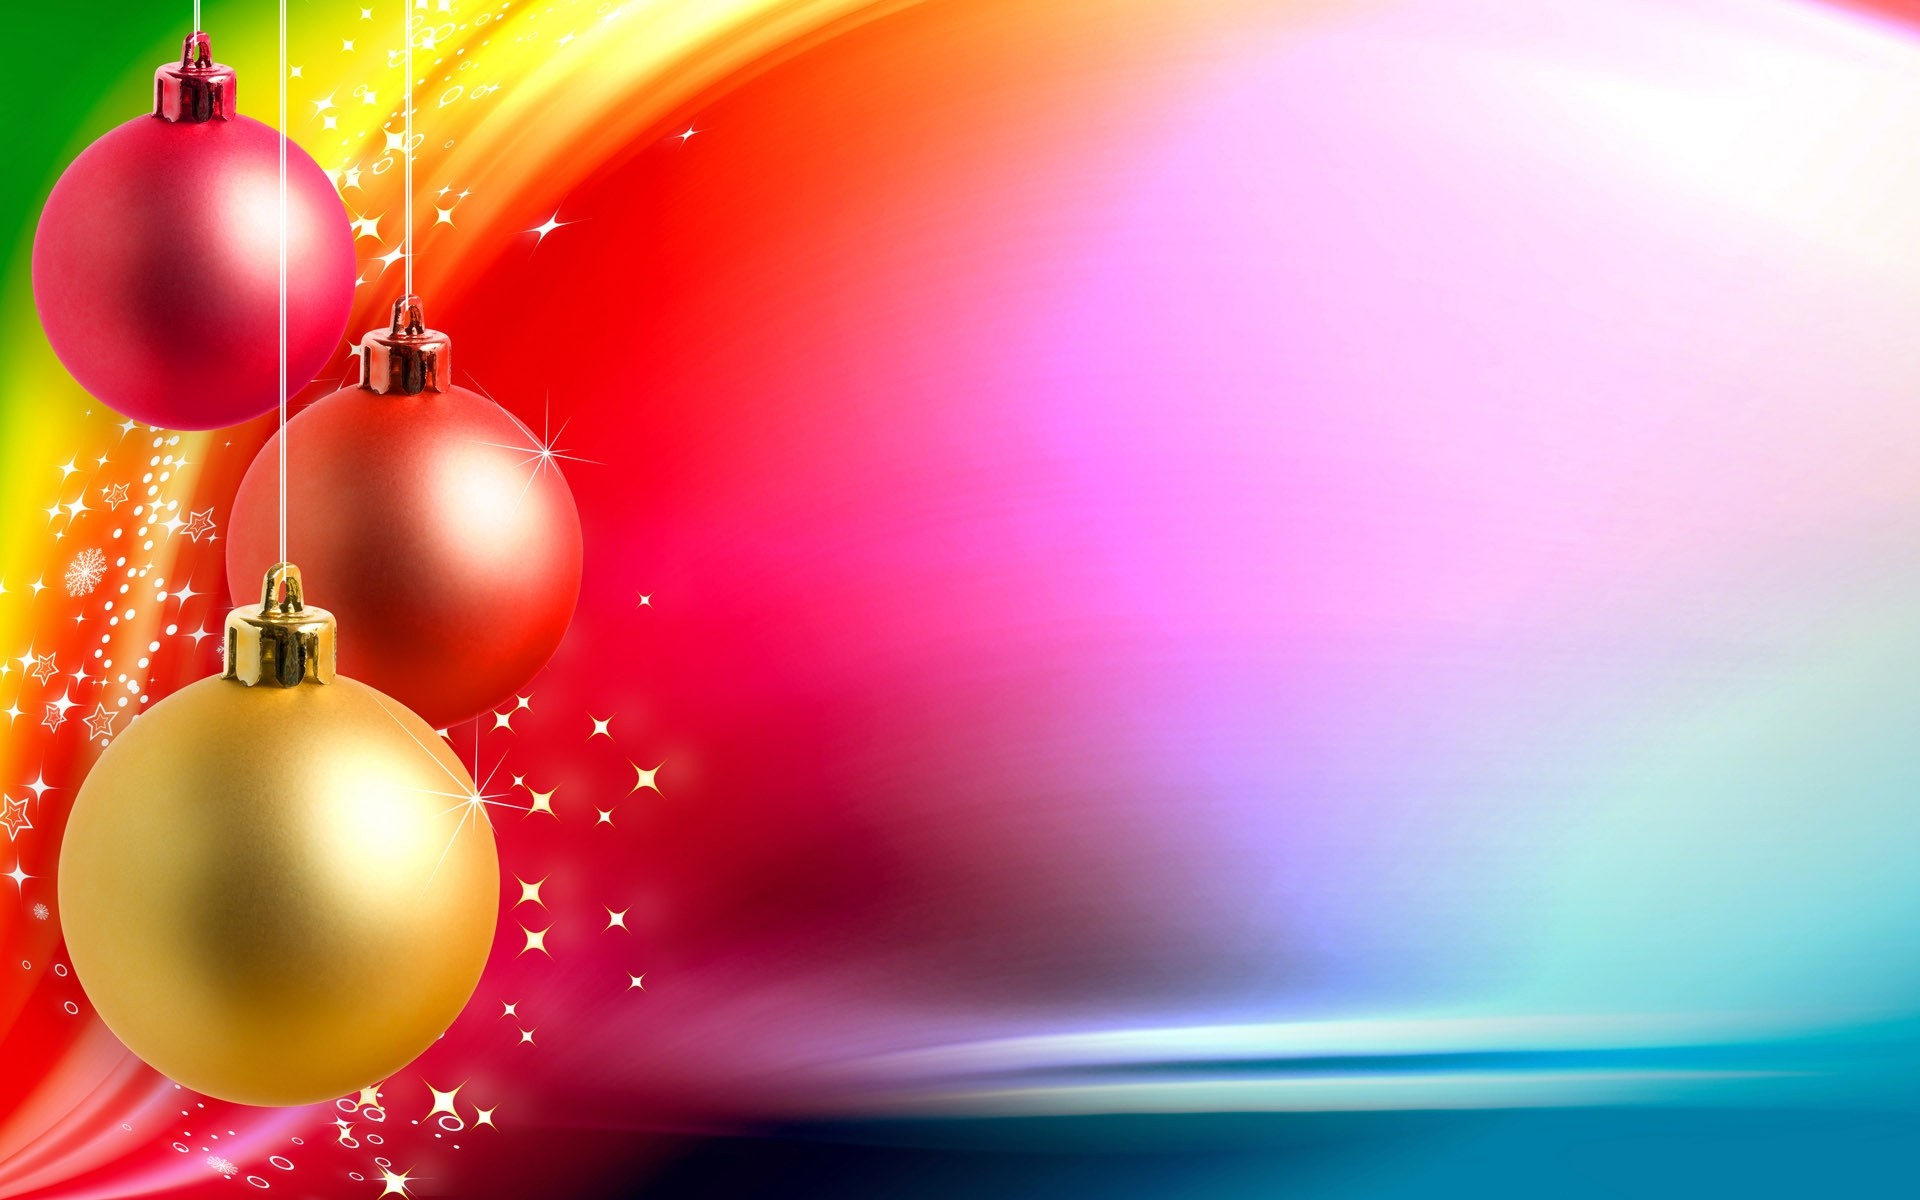 christmas wallpaper christmas backgrounds - HD 1920×1200